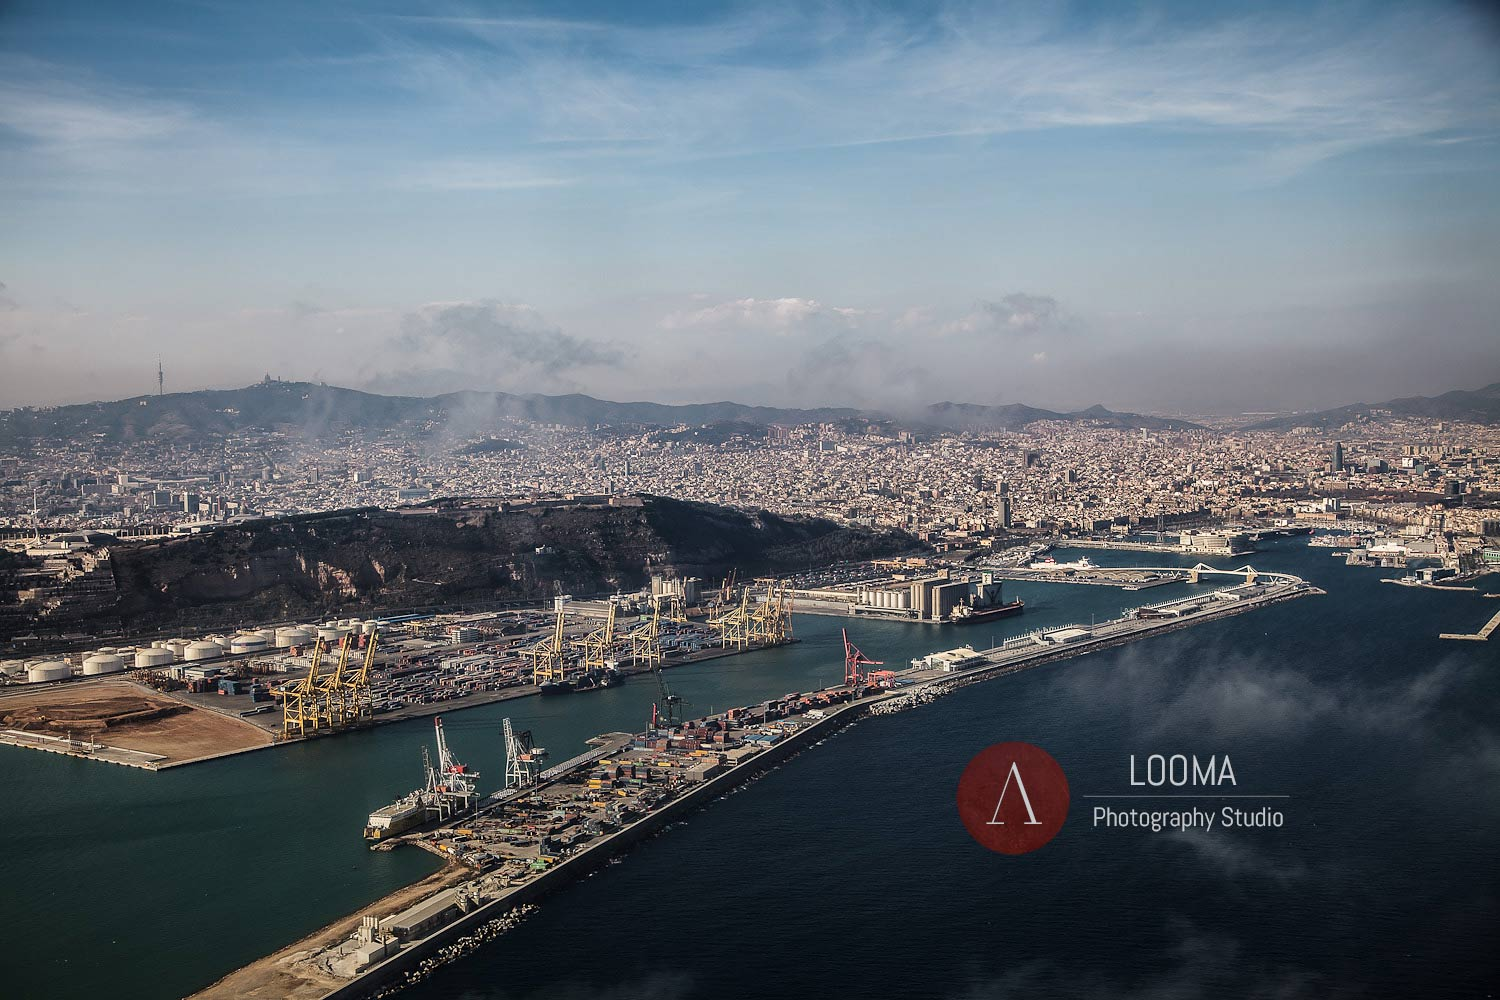 Aerial photography service in Italy